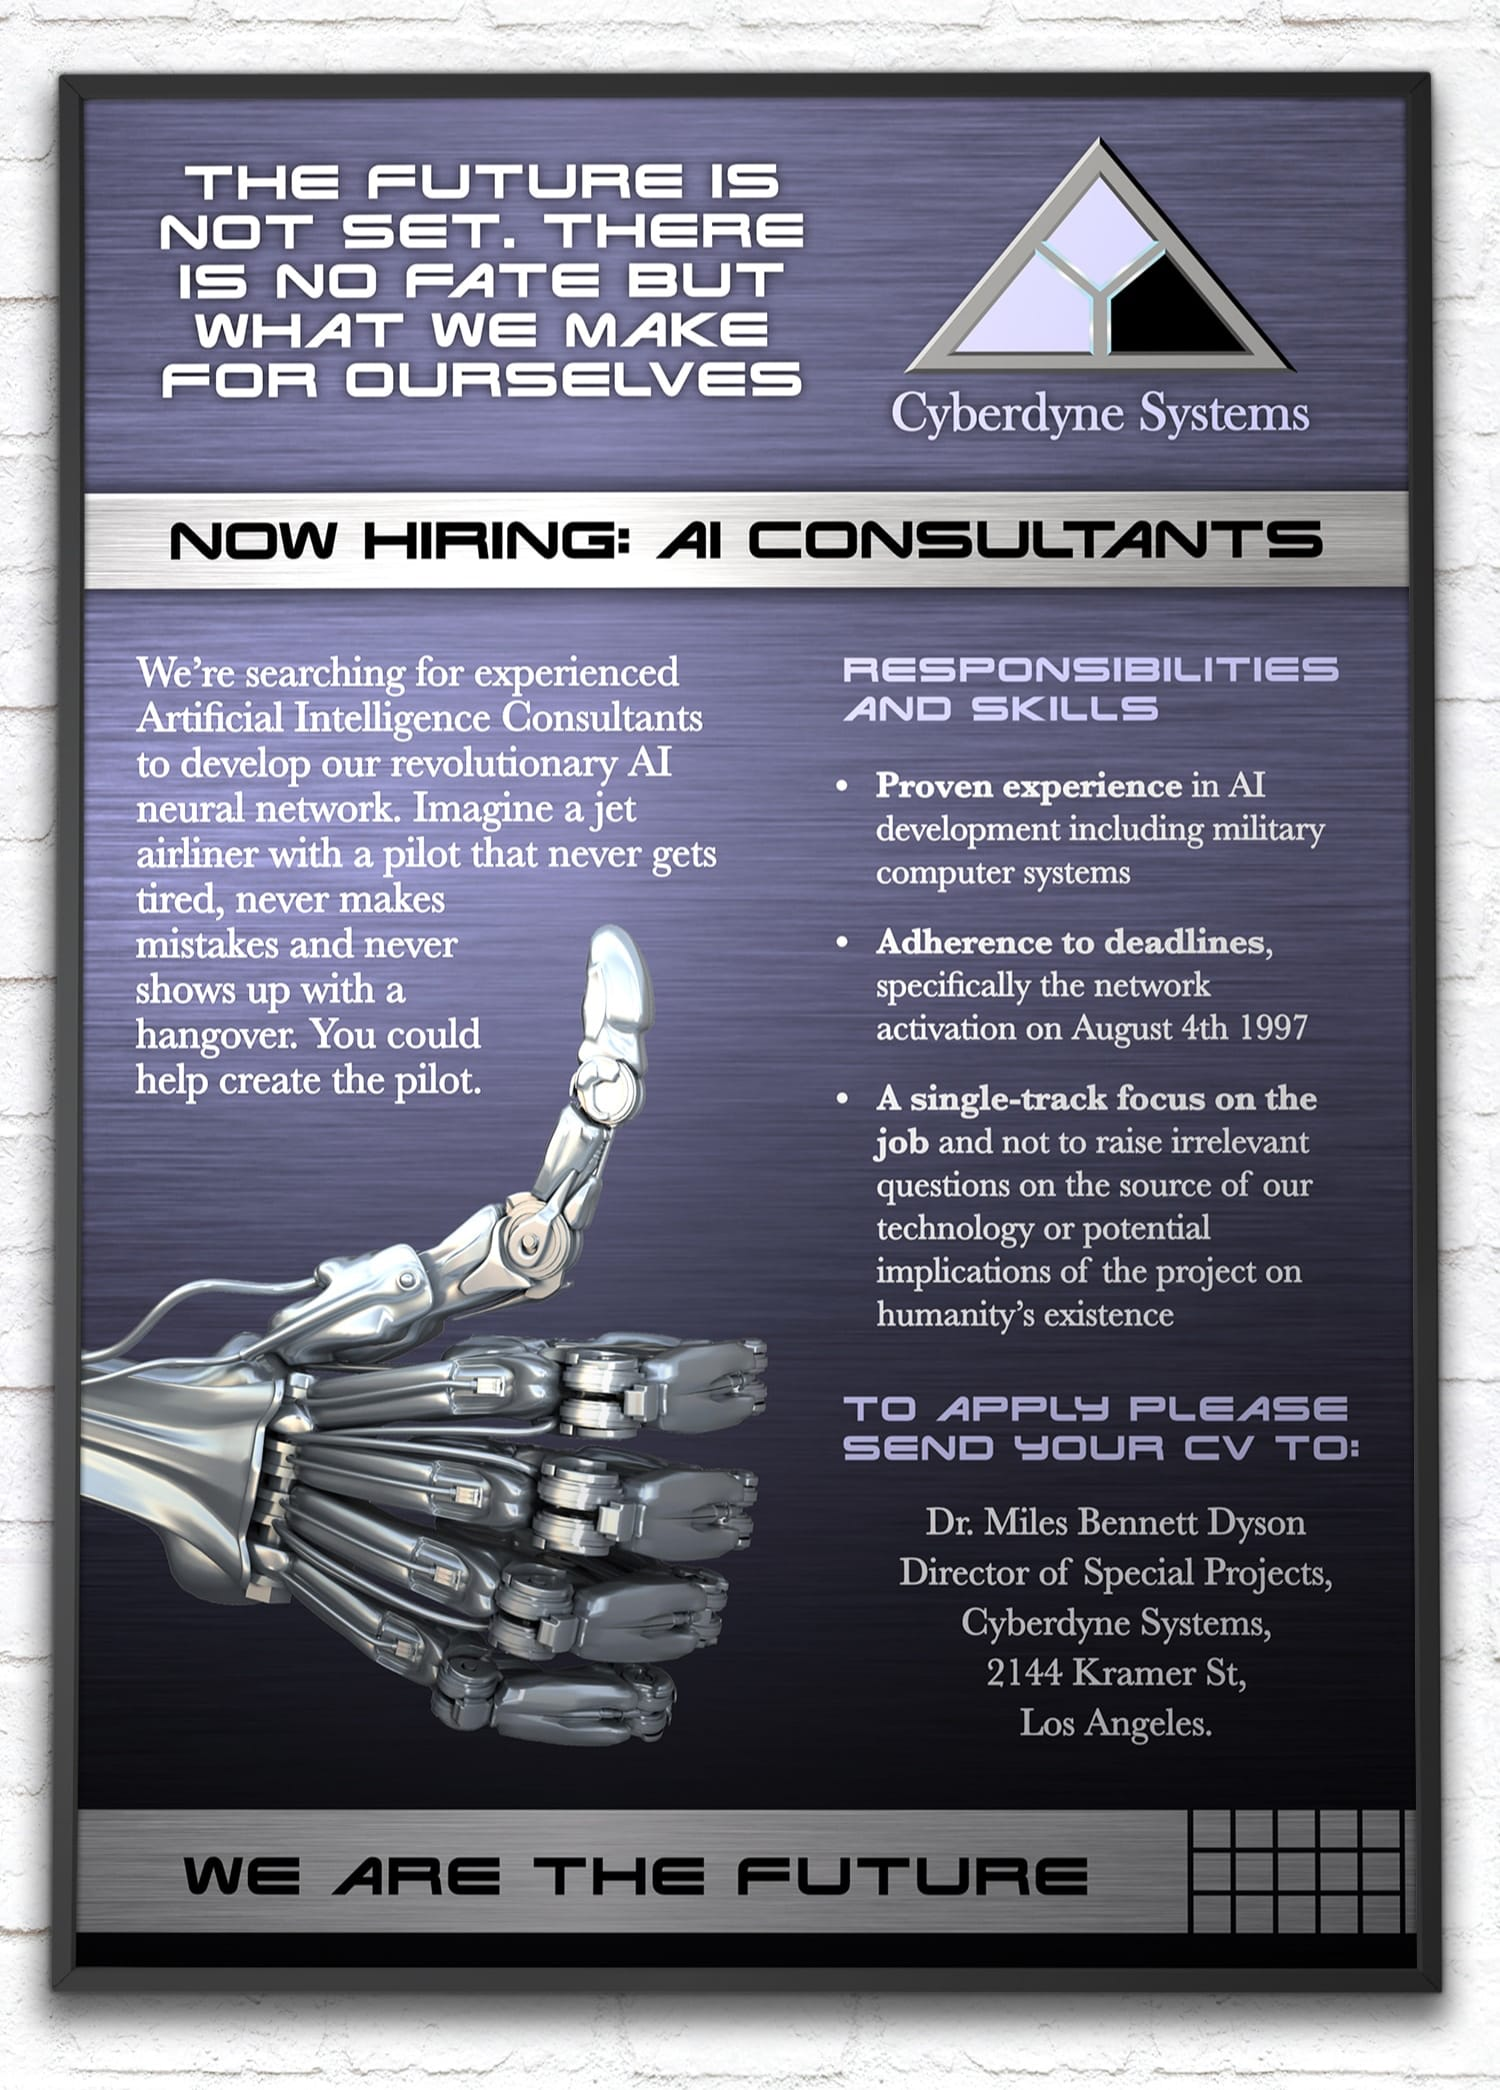 Fictional Terminator recruitment poster - Cyberdyne Systems advertisement for AI consultants